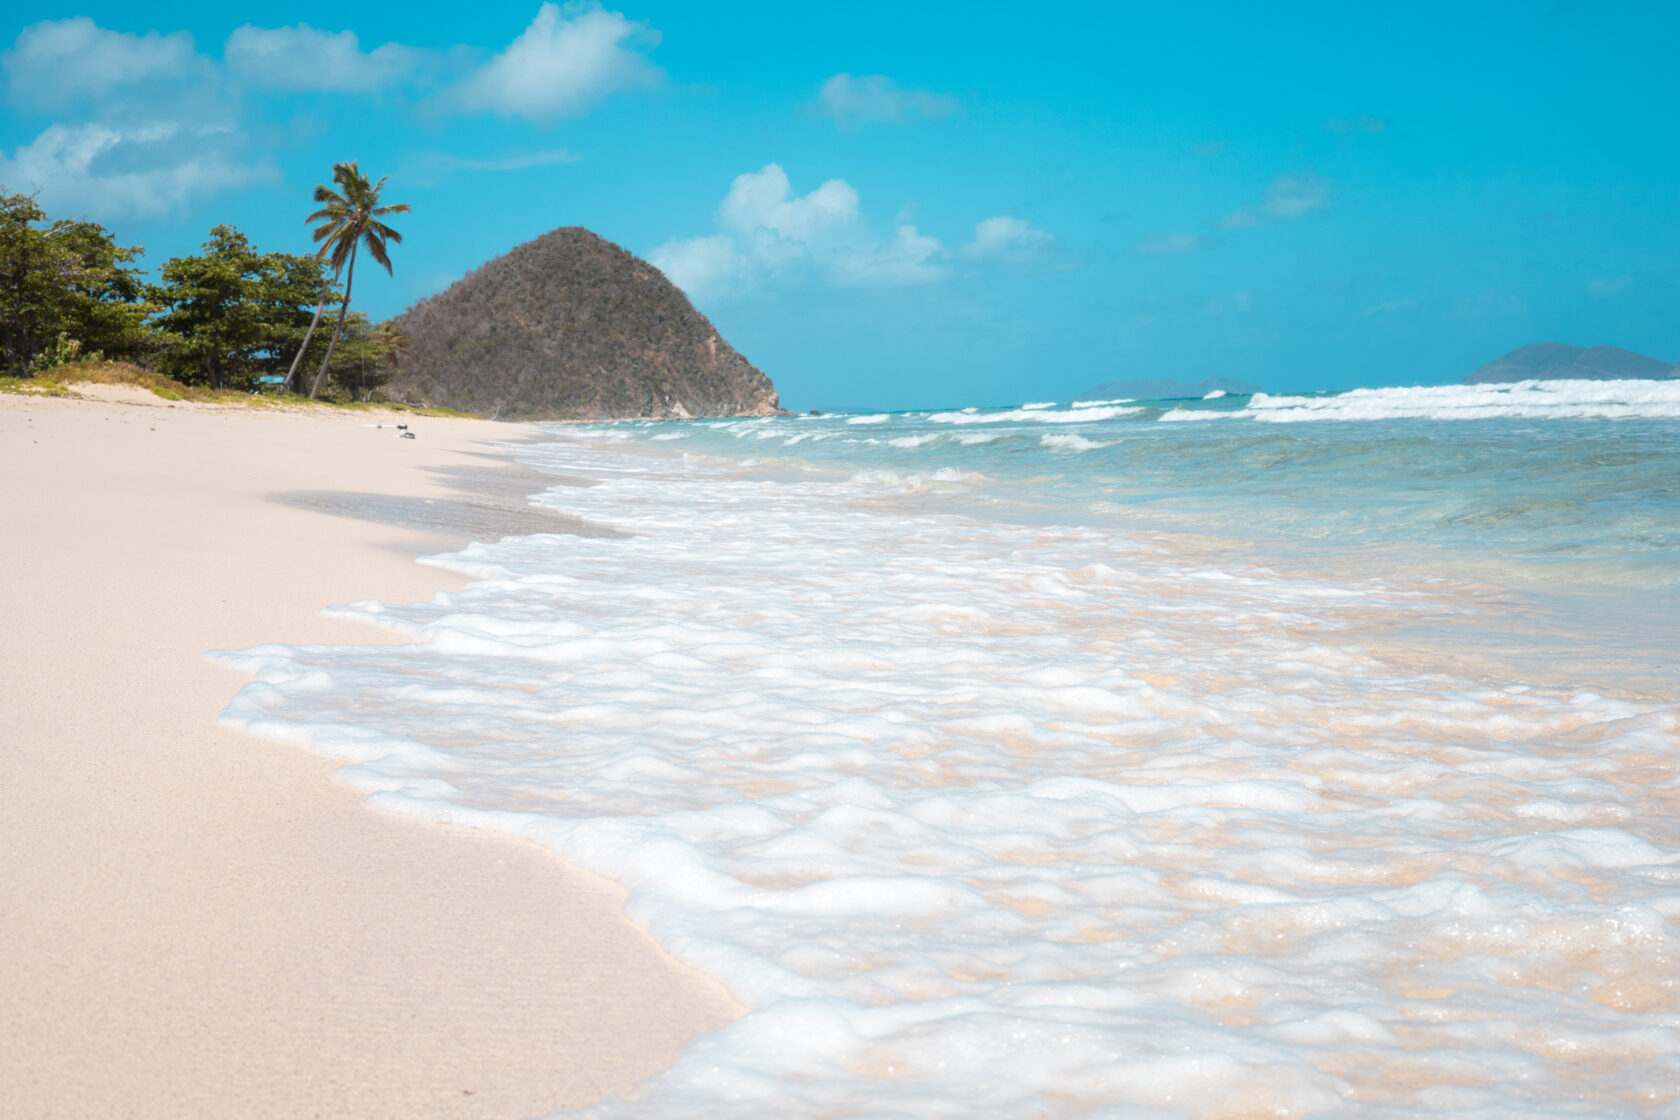 A beach with waves and palm trees